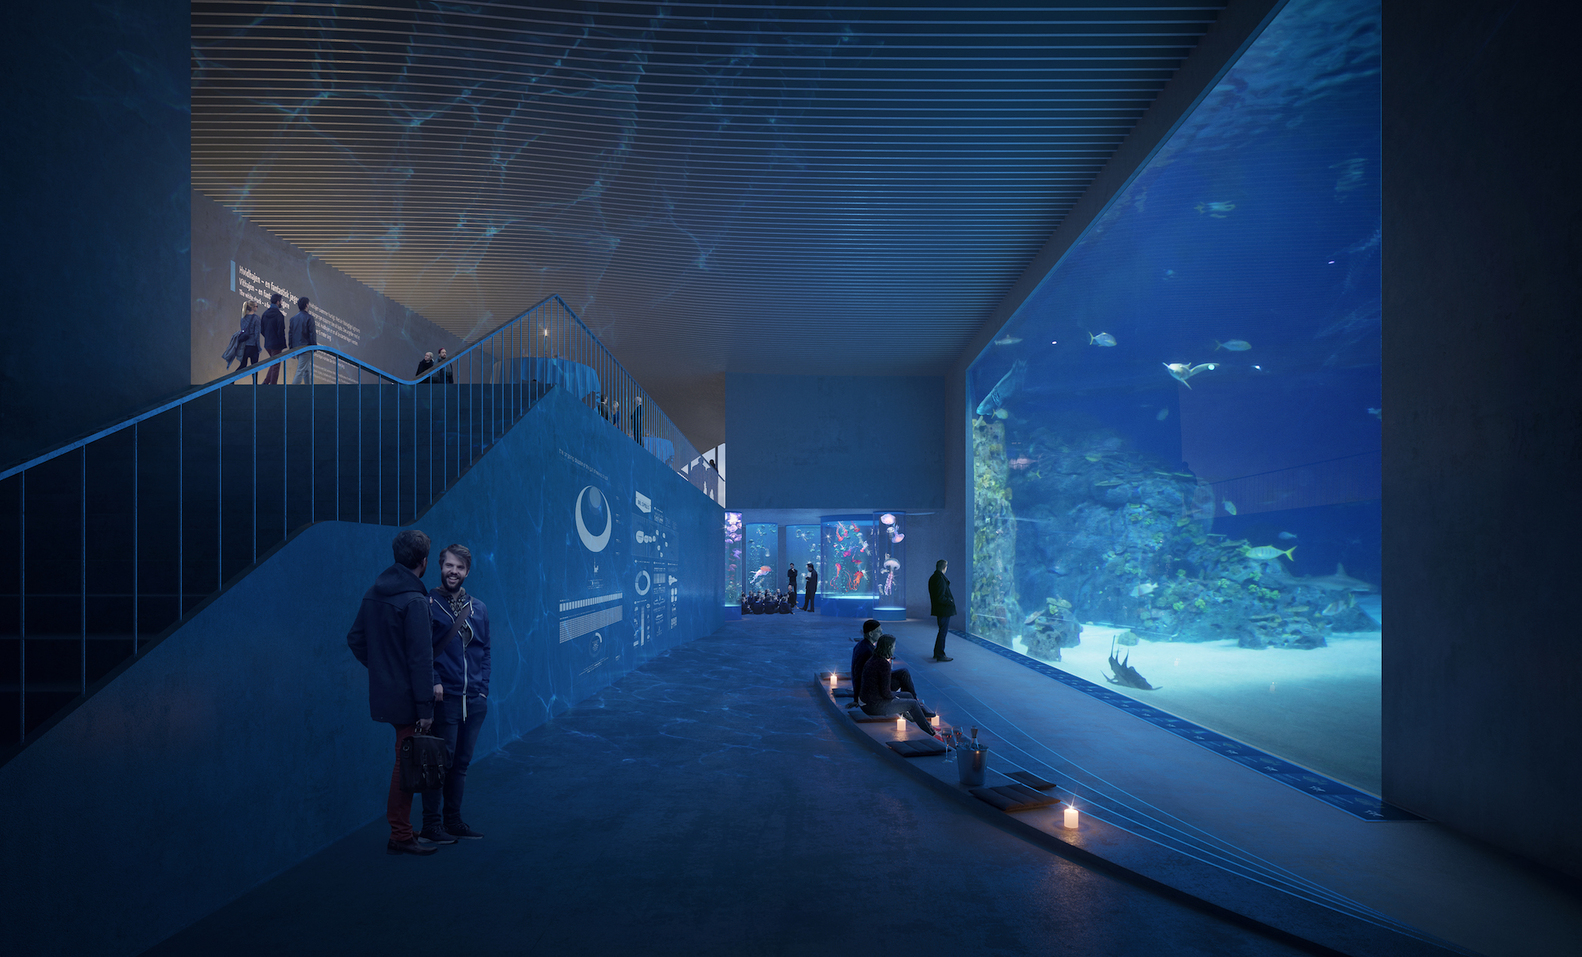 Aquarium_3XN_and_GERNER_GERNER_PLUS_IGS Magazine-6